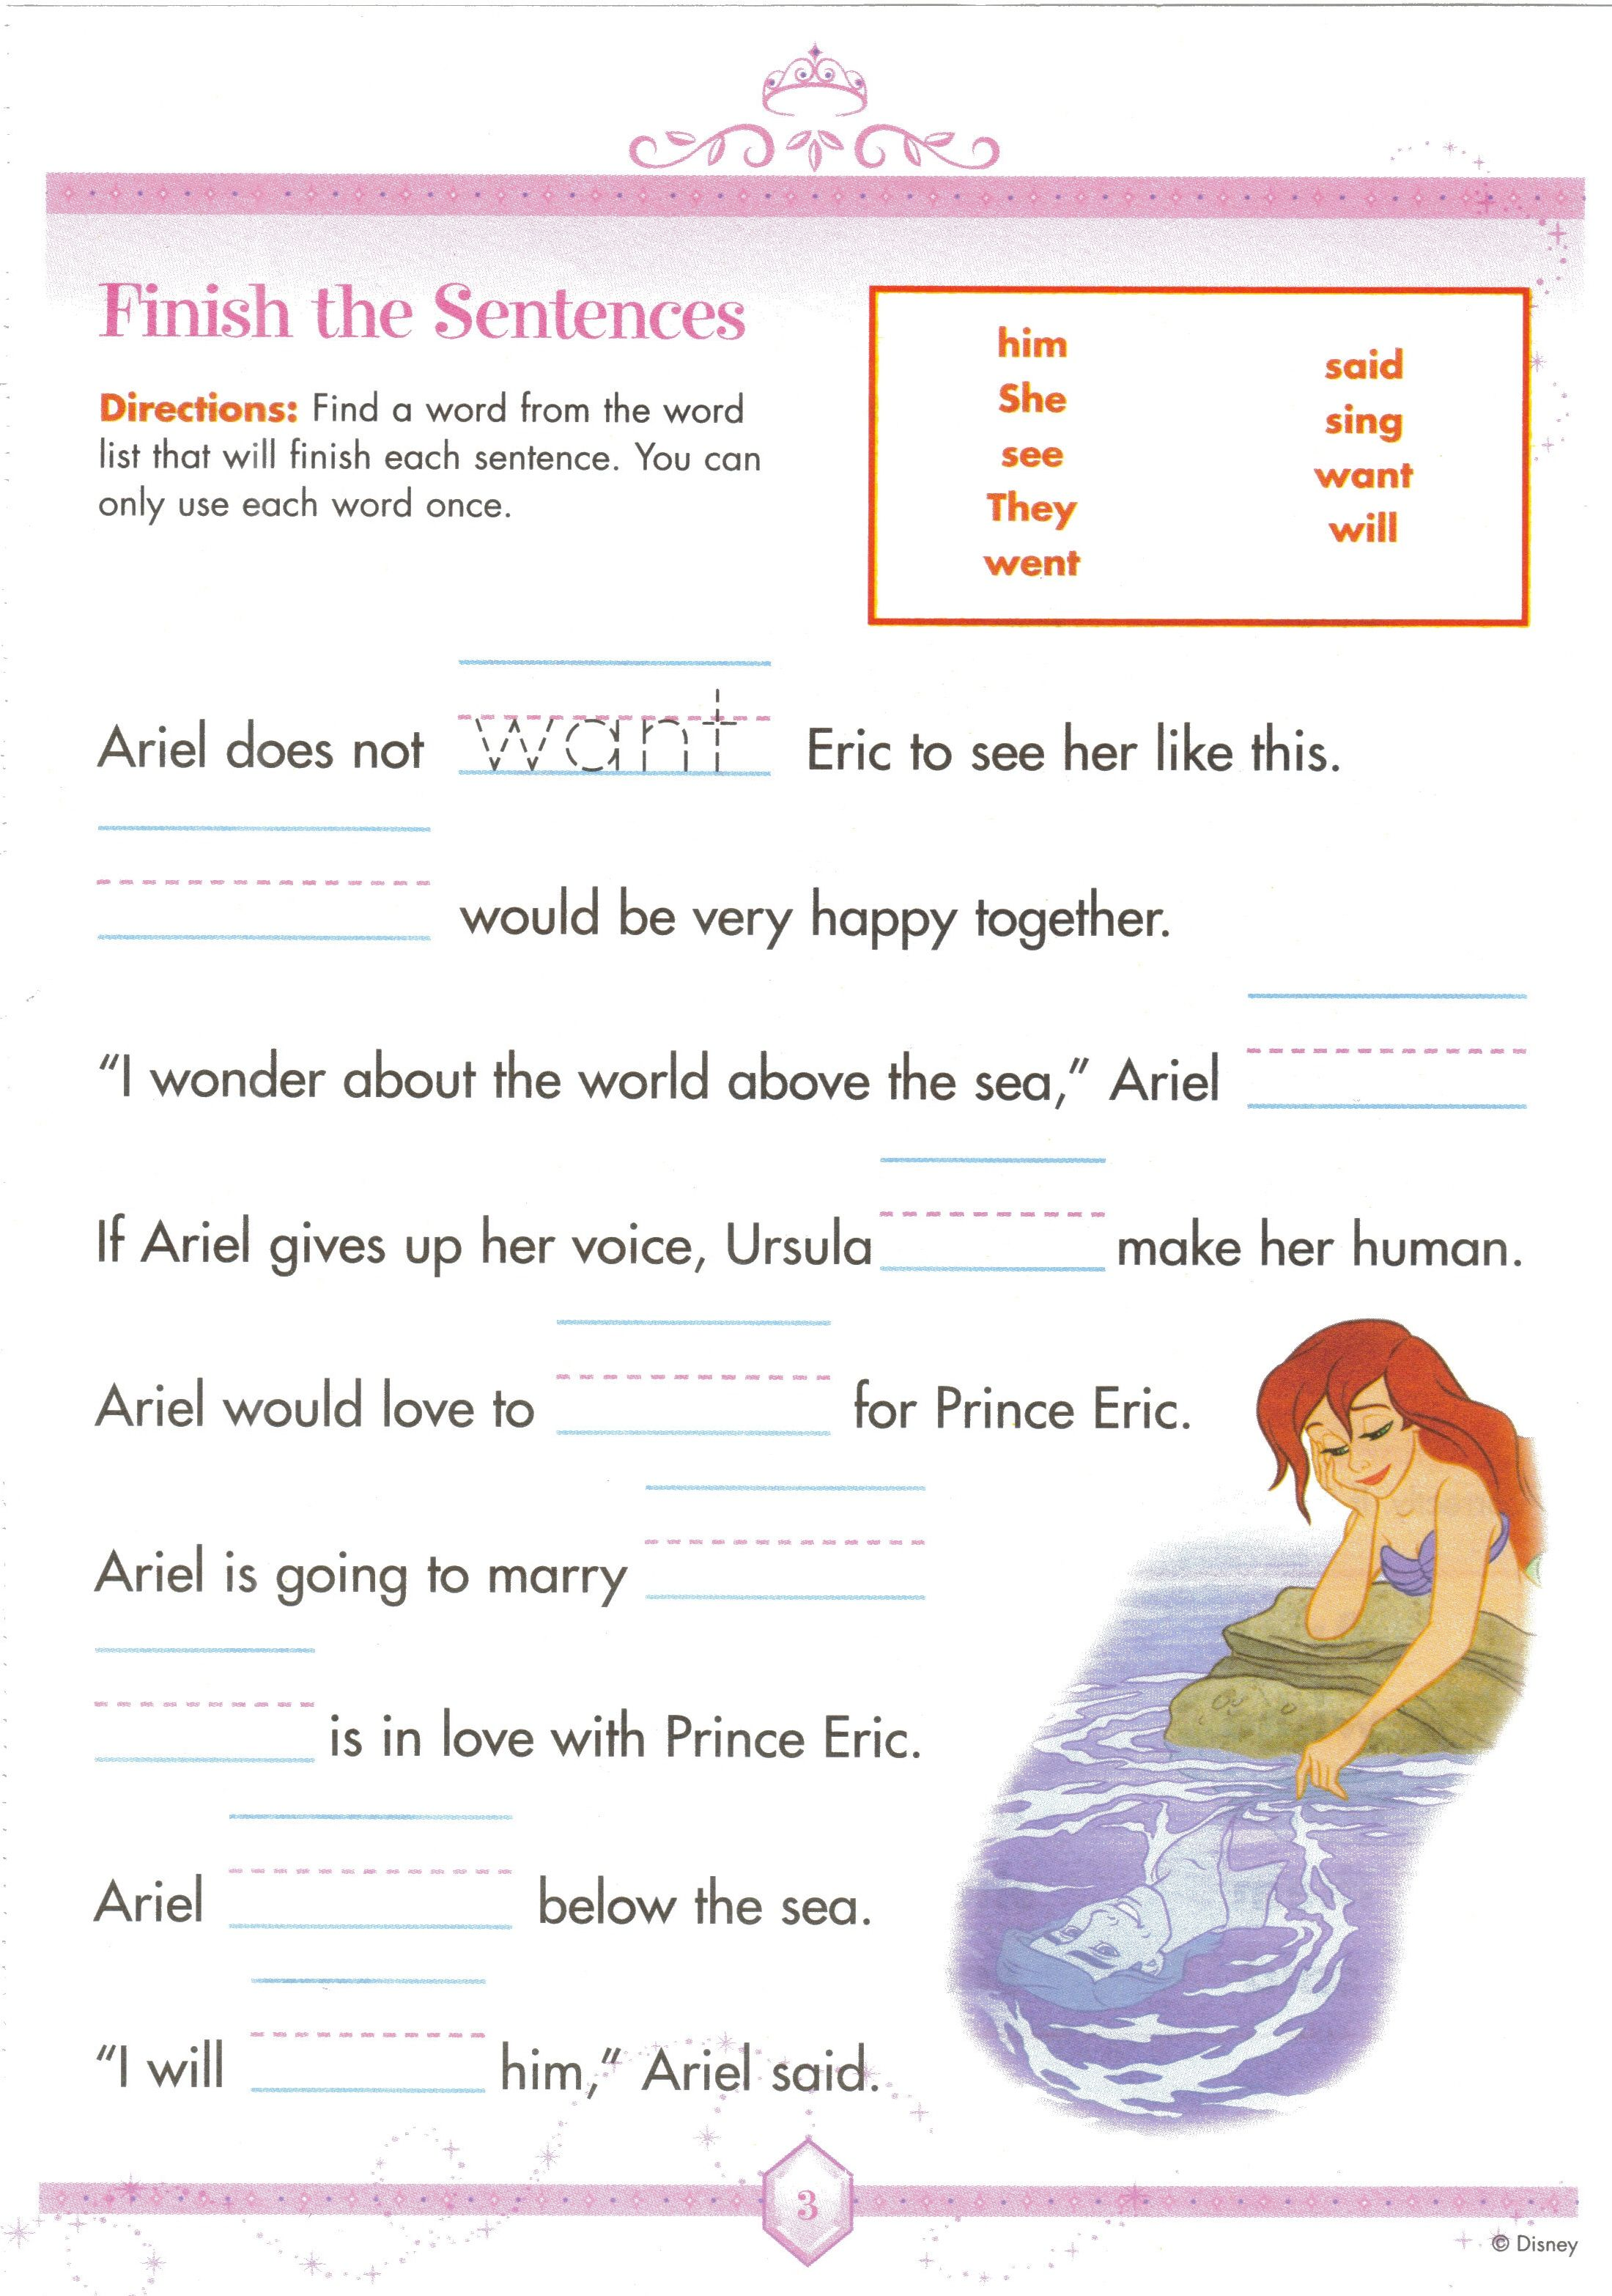 Weirdmailus  Remarkable  Images About Worksheets On Pinterest  Fun Facts For Kids  With Outstanding  Images About Worksheets On Pinterest  Fun Facts For Kids Earth Day Worksheets And Jungles With Beautiful Poem Comprehension Worksheets Also Convert Mm To Cm Worksheet In Addition Th Worksheets Free And Letters And Sounds Phase  Worksheets As Well As Worksheets On Shapes For Grade  Additionally Identify The Part Of Speech Worksheet From Pinterestcom With Weirdmailus  Outstanding  Images About Worksheets On Pinterest  Fun Facts For Kids  With Beautiful  Images About Worksheets On Pinterest  Fun Facts For Kids Earth Day Worksheets And Jungles And Remarkable Poem Comprehension Worksheets Also Convert Mm To Cm Worksheet In Addition Th Worksheets Free From Pinterestcom